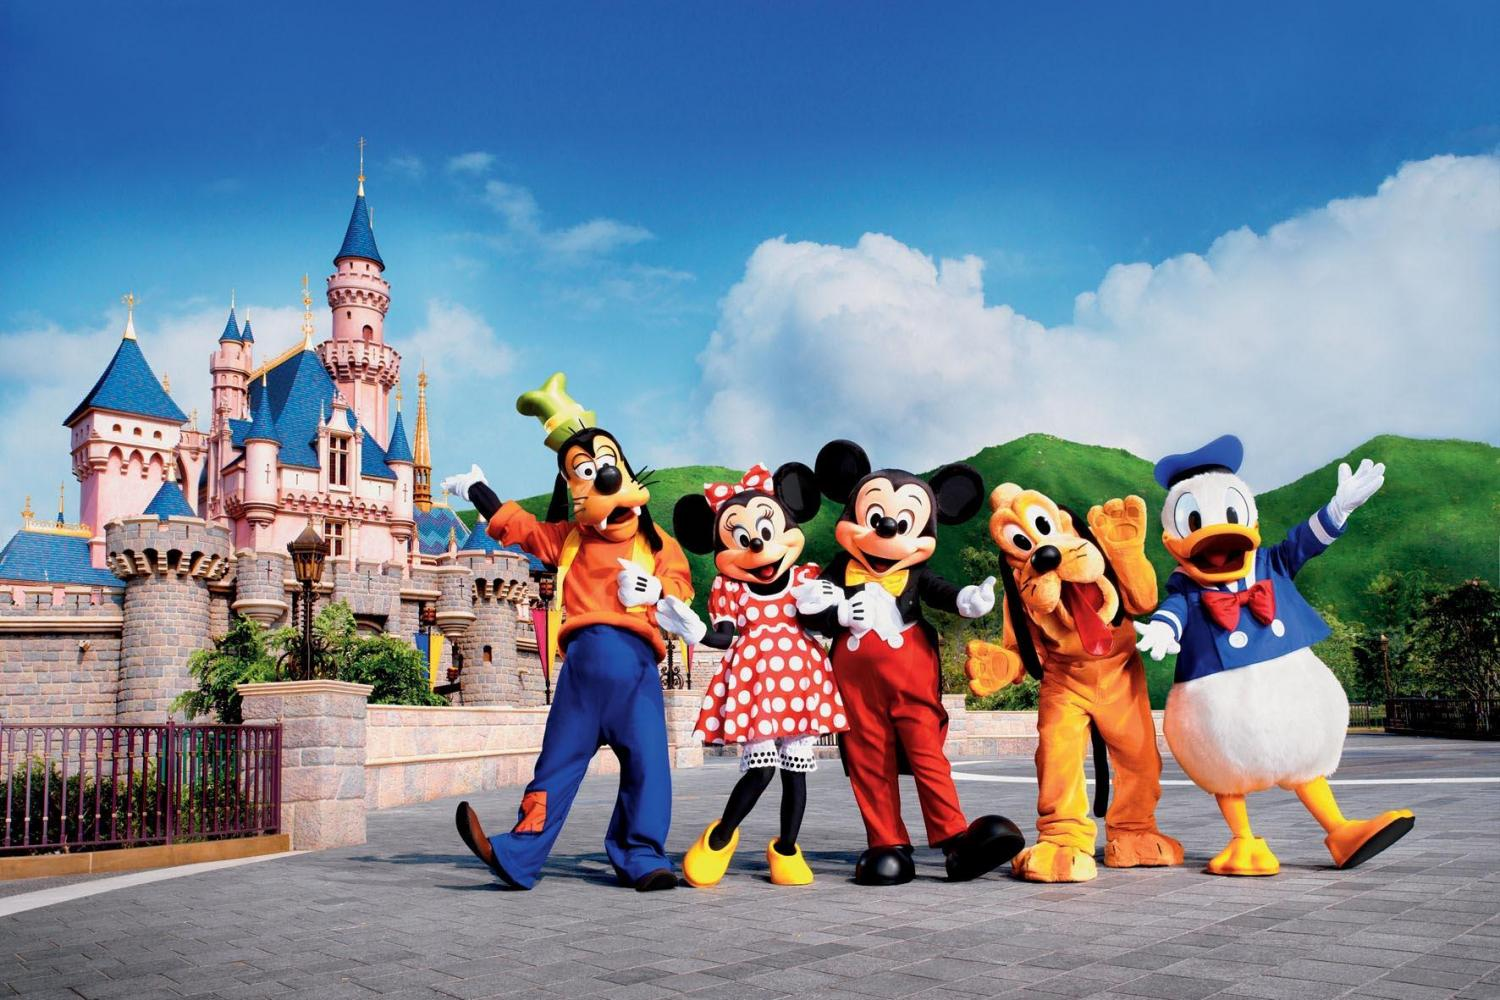 PAKET TOUR HONGKONG 2016 | 6D5N HONGKONG SHENZHEN MACAU + DISNEYLAND (CHRISTMAS & NEW YEAR AT HKG'16) 26, 28, 29  Dec By CHINA AIRLINES 2N @ SHENZHEN - 1N @ MACAU - 2N @ HONGKONG ö